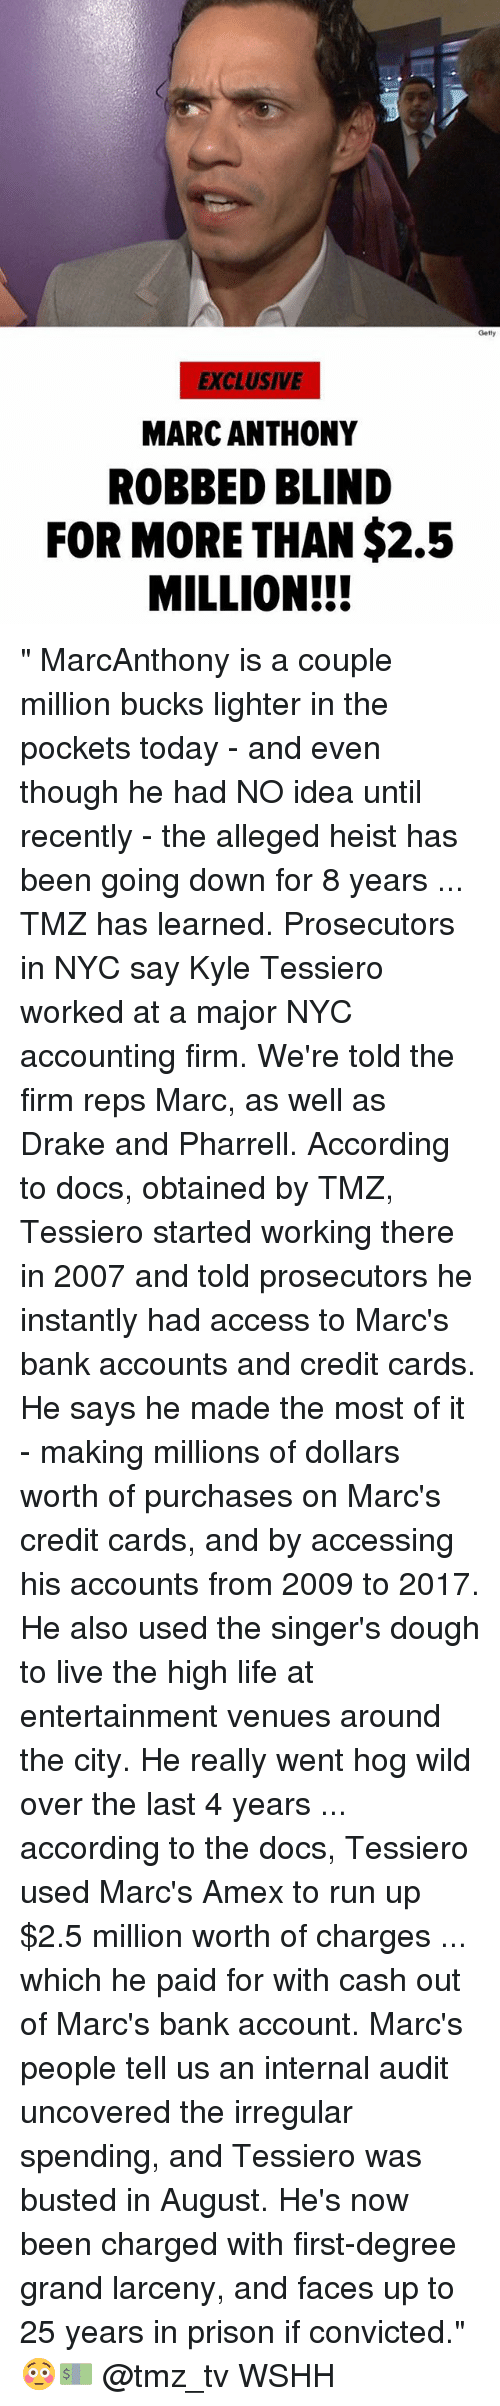 "Drake, Life, and Memes: Getty  EXCLUSIVE  MARC ANTHONY  ROBBED BLIND  FOR MORE THAN $2.5  MILLION!! "" MarcAnthony is a couple million bucks lighter in the pockets today - and even though he had NO idea until recently - the alleged heist has been going down for 8 years ... TMZ has learned. Prosecutors in NYC say Kyle Tessiero worked at a major NYC accounting firm. We're told the firm reps Marc, as well as Drake and Pharrell. According to docs, obtained by TMZ, Tessiero started working there in 2007 and told prosecutors he instantly had access to Marc's bank accounts and credit cards. He says he made the most of it - making millions of dollars worth of purchases on Marc's credit cards, and by accessing his accounts from 2009 to 2017. He also used the singer's dough to live the high life at entertainment venues around the city. He really went hog wild over the last 4 years ... according to the docs, Tessiero used Marc's Amex to run up $2.5 million worth of charges ... which he paid for with cash out of Marc's bank account. Marc's people tell us an internal audit uncovered the irregular spending, and Tessiero was busted in August. He's now been charged with first-degree grand larceny, and faces up to 25 years in prison if convicted."" 😳💵 @tmz_tv WSHH"